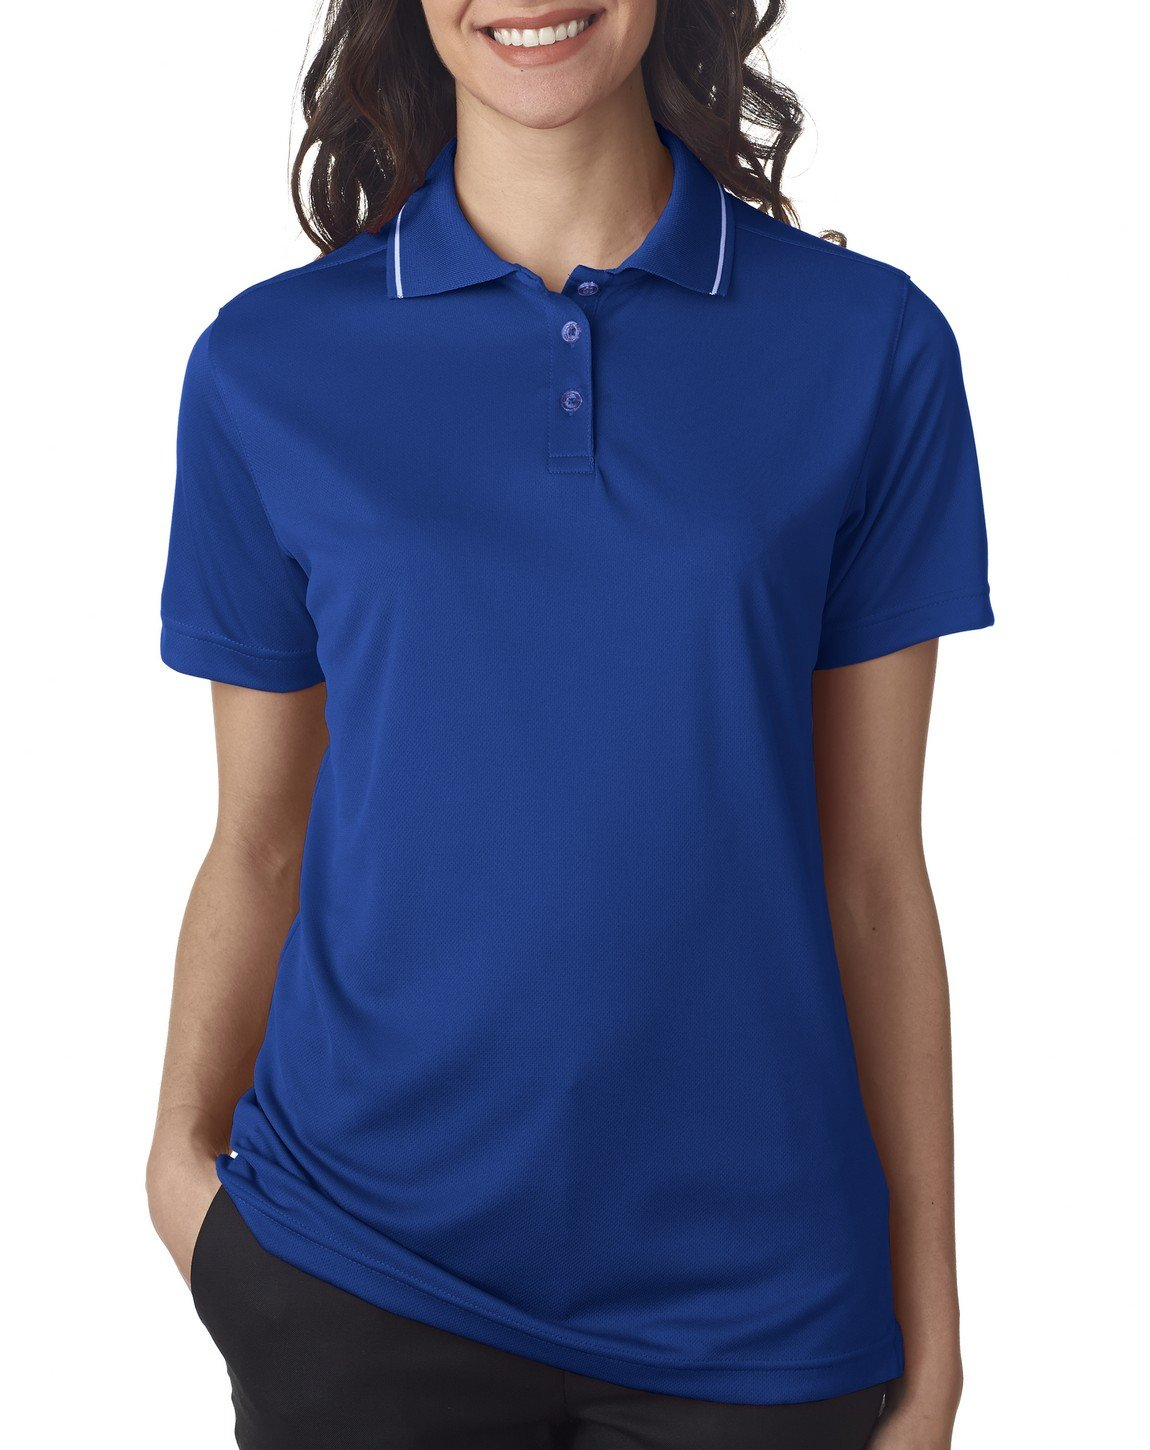 UltraClub Ladies' Polo with Tipped Collar - Royal/ White - 2XL